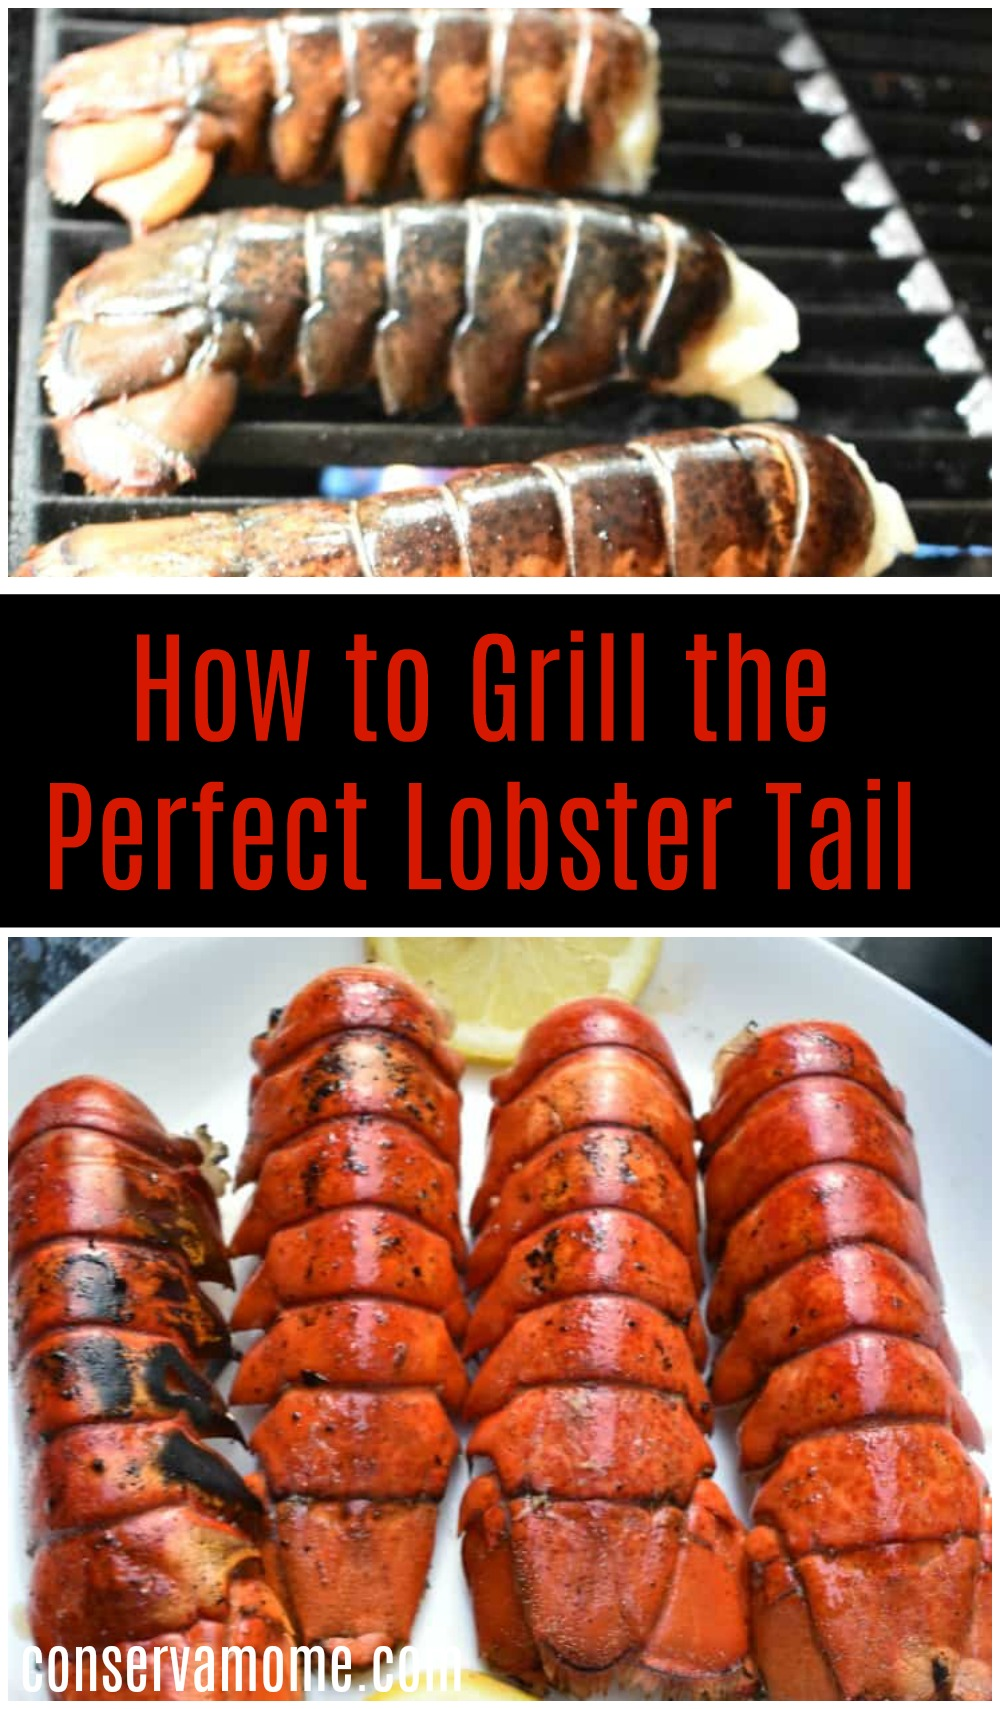 How to grill the perfect Lobster tail